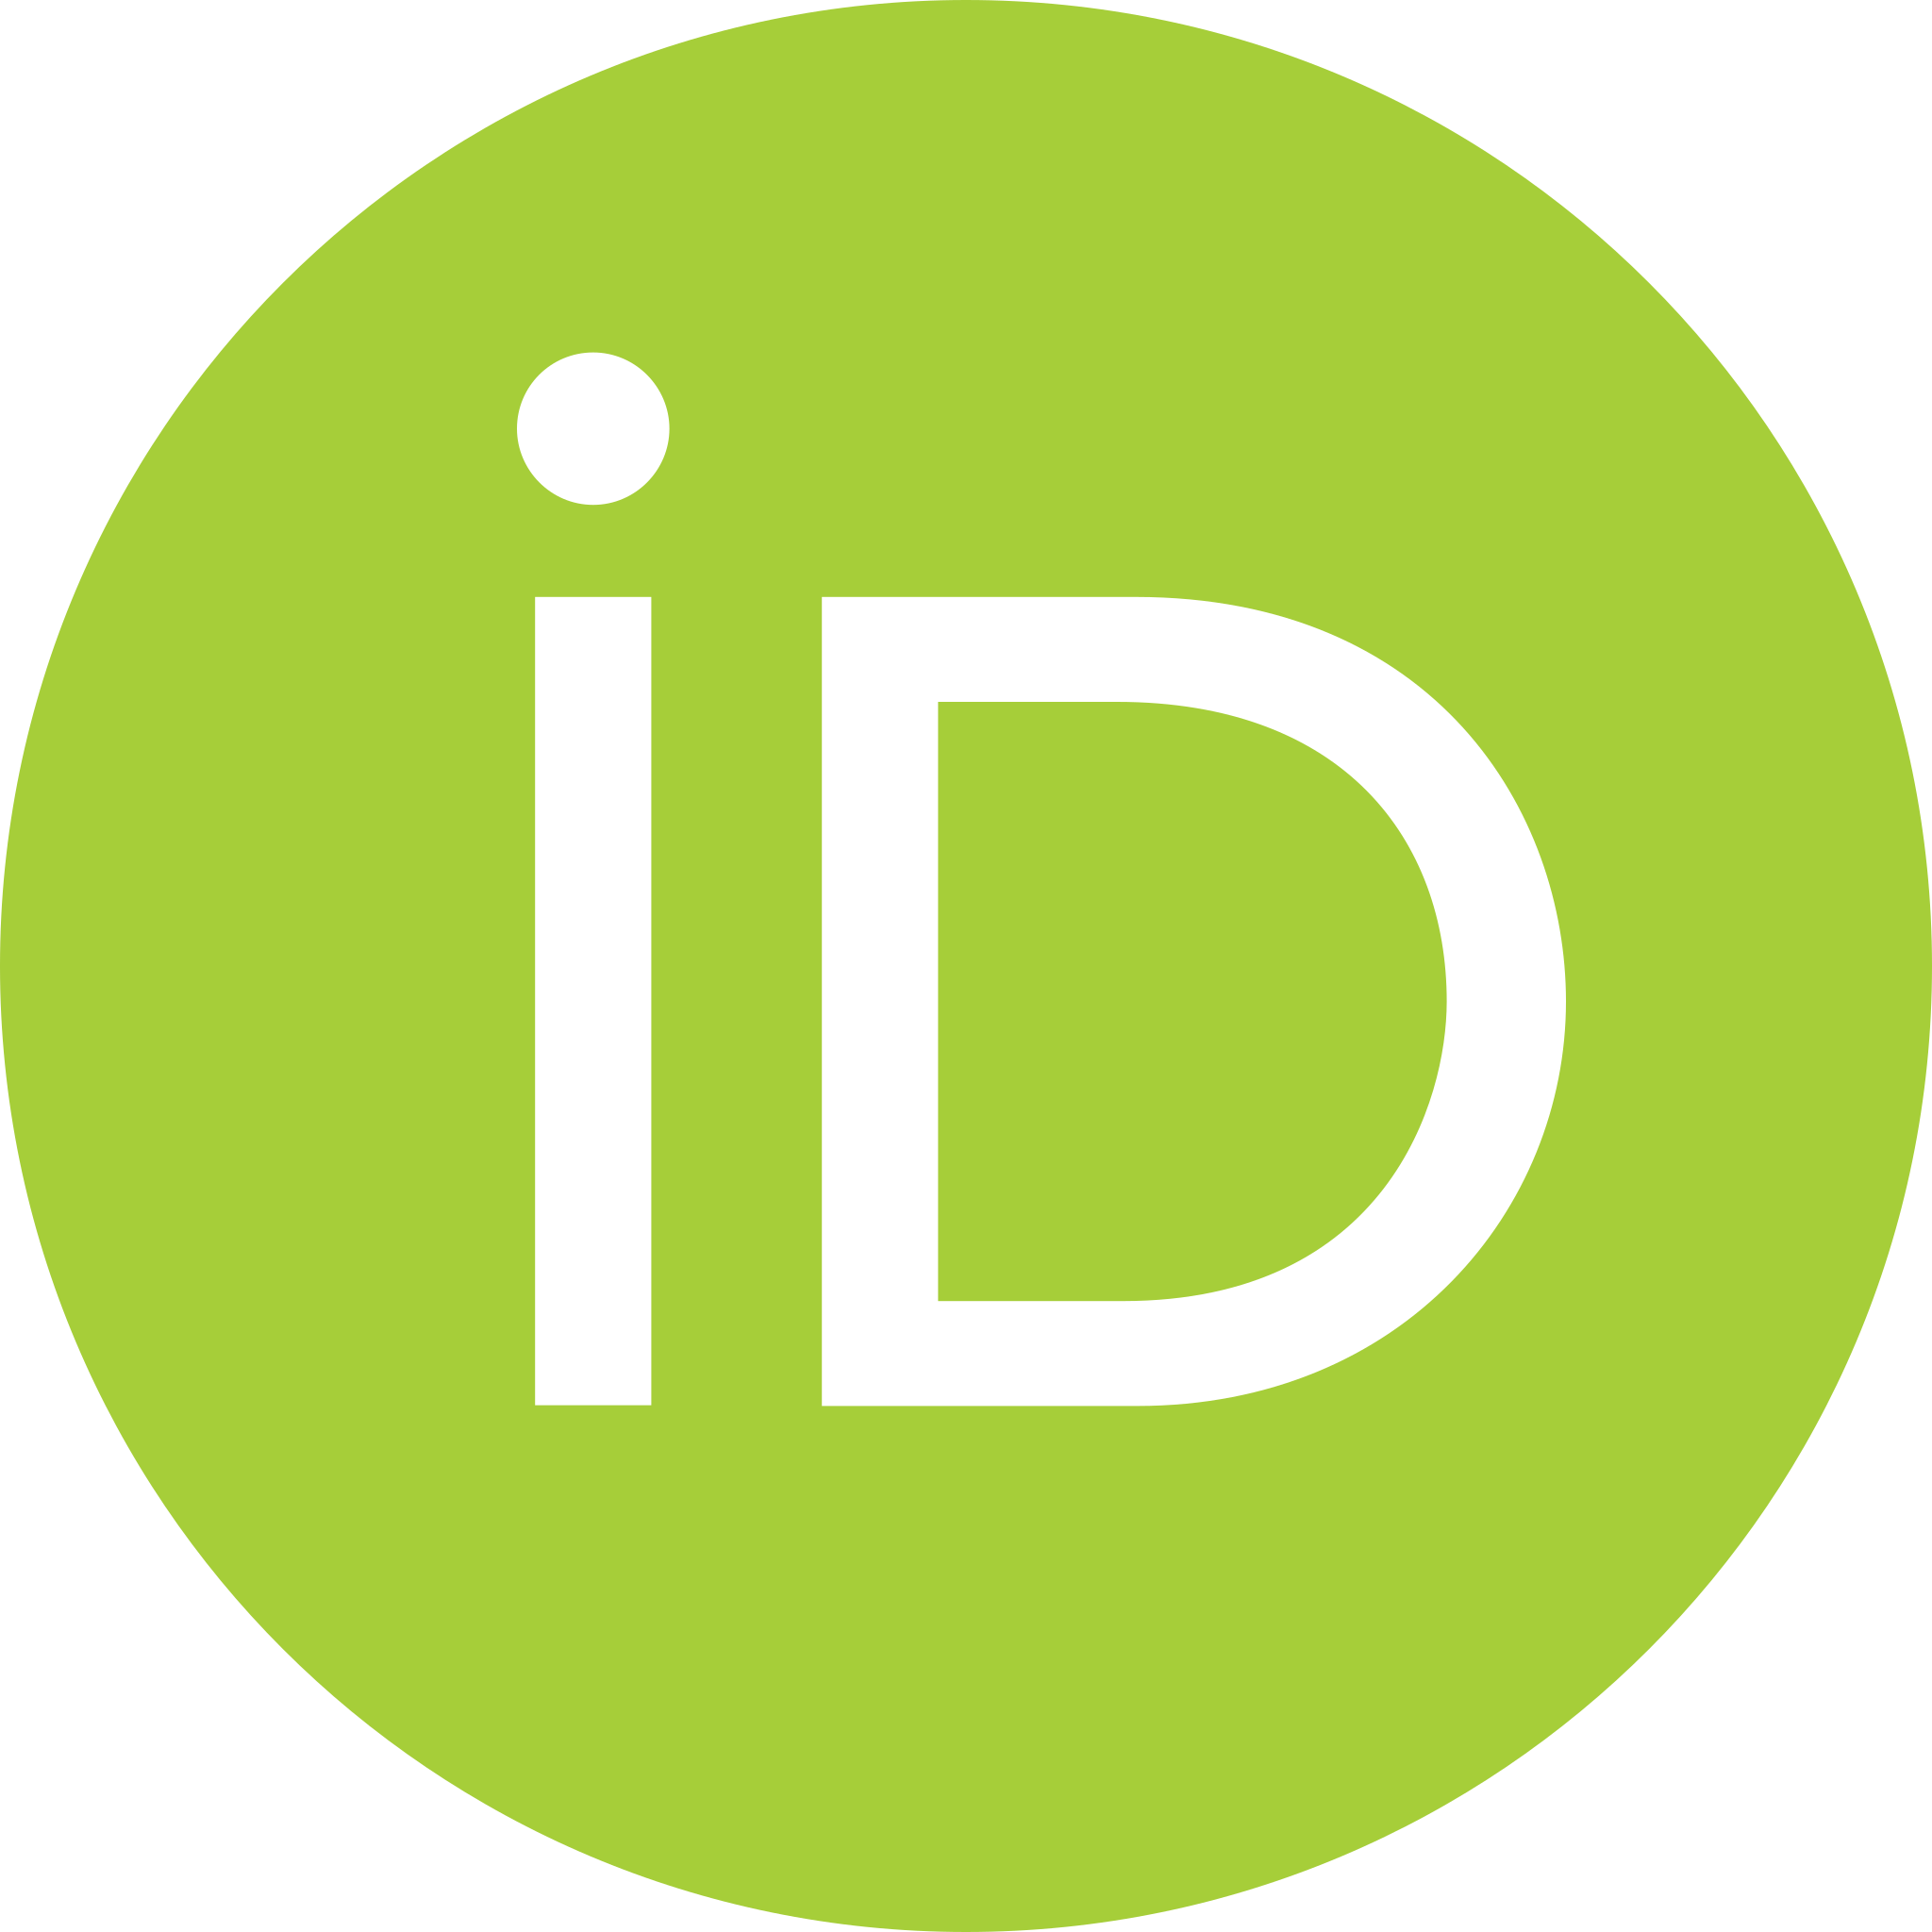 ID ORCID